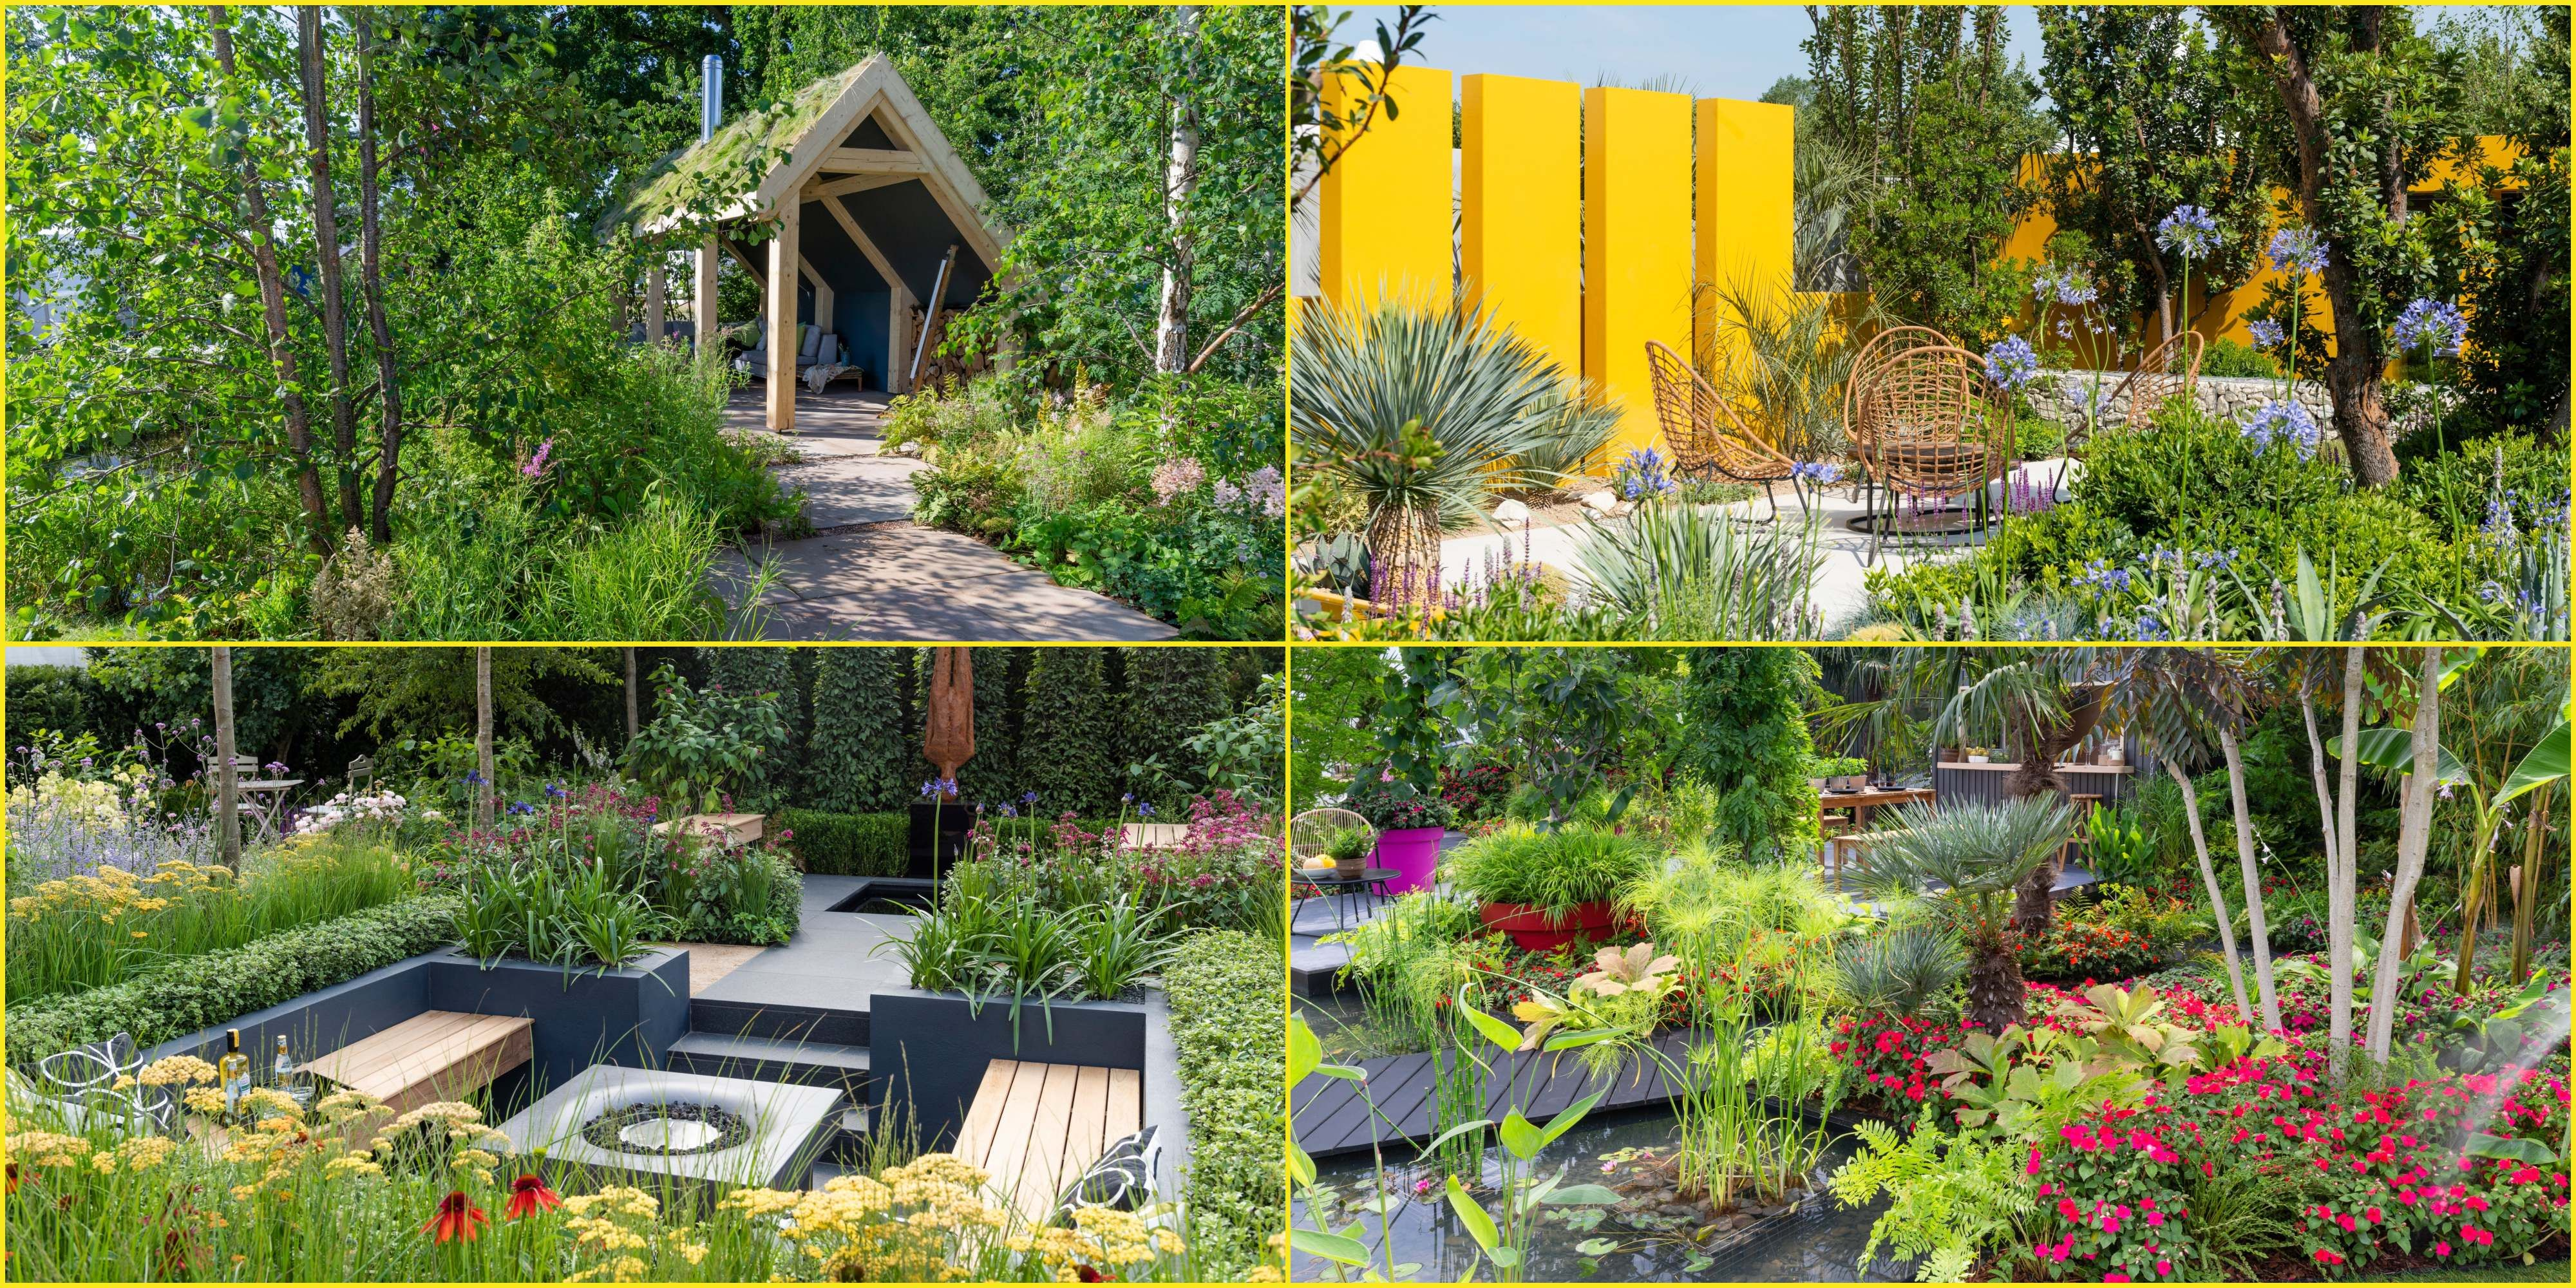 Hampton Court Palace Flower Show 2018: Best In Show And Gold